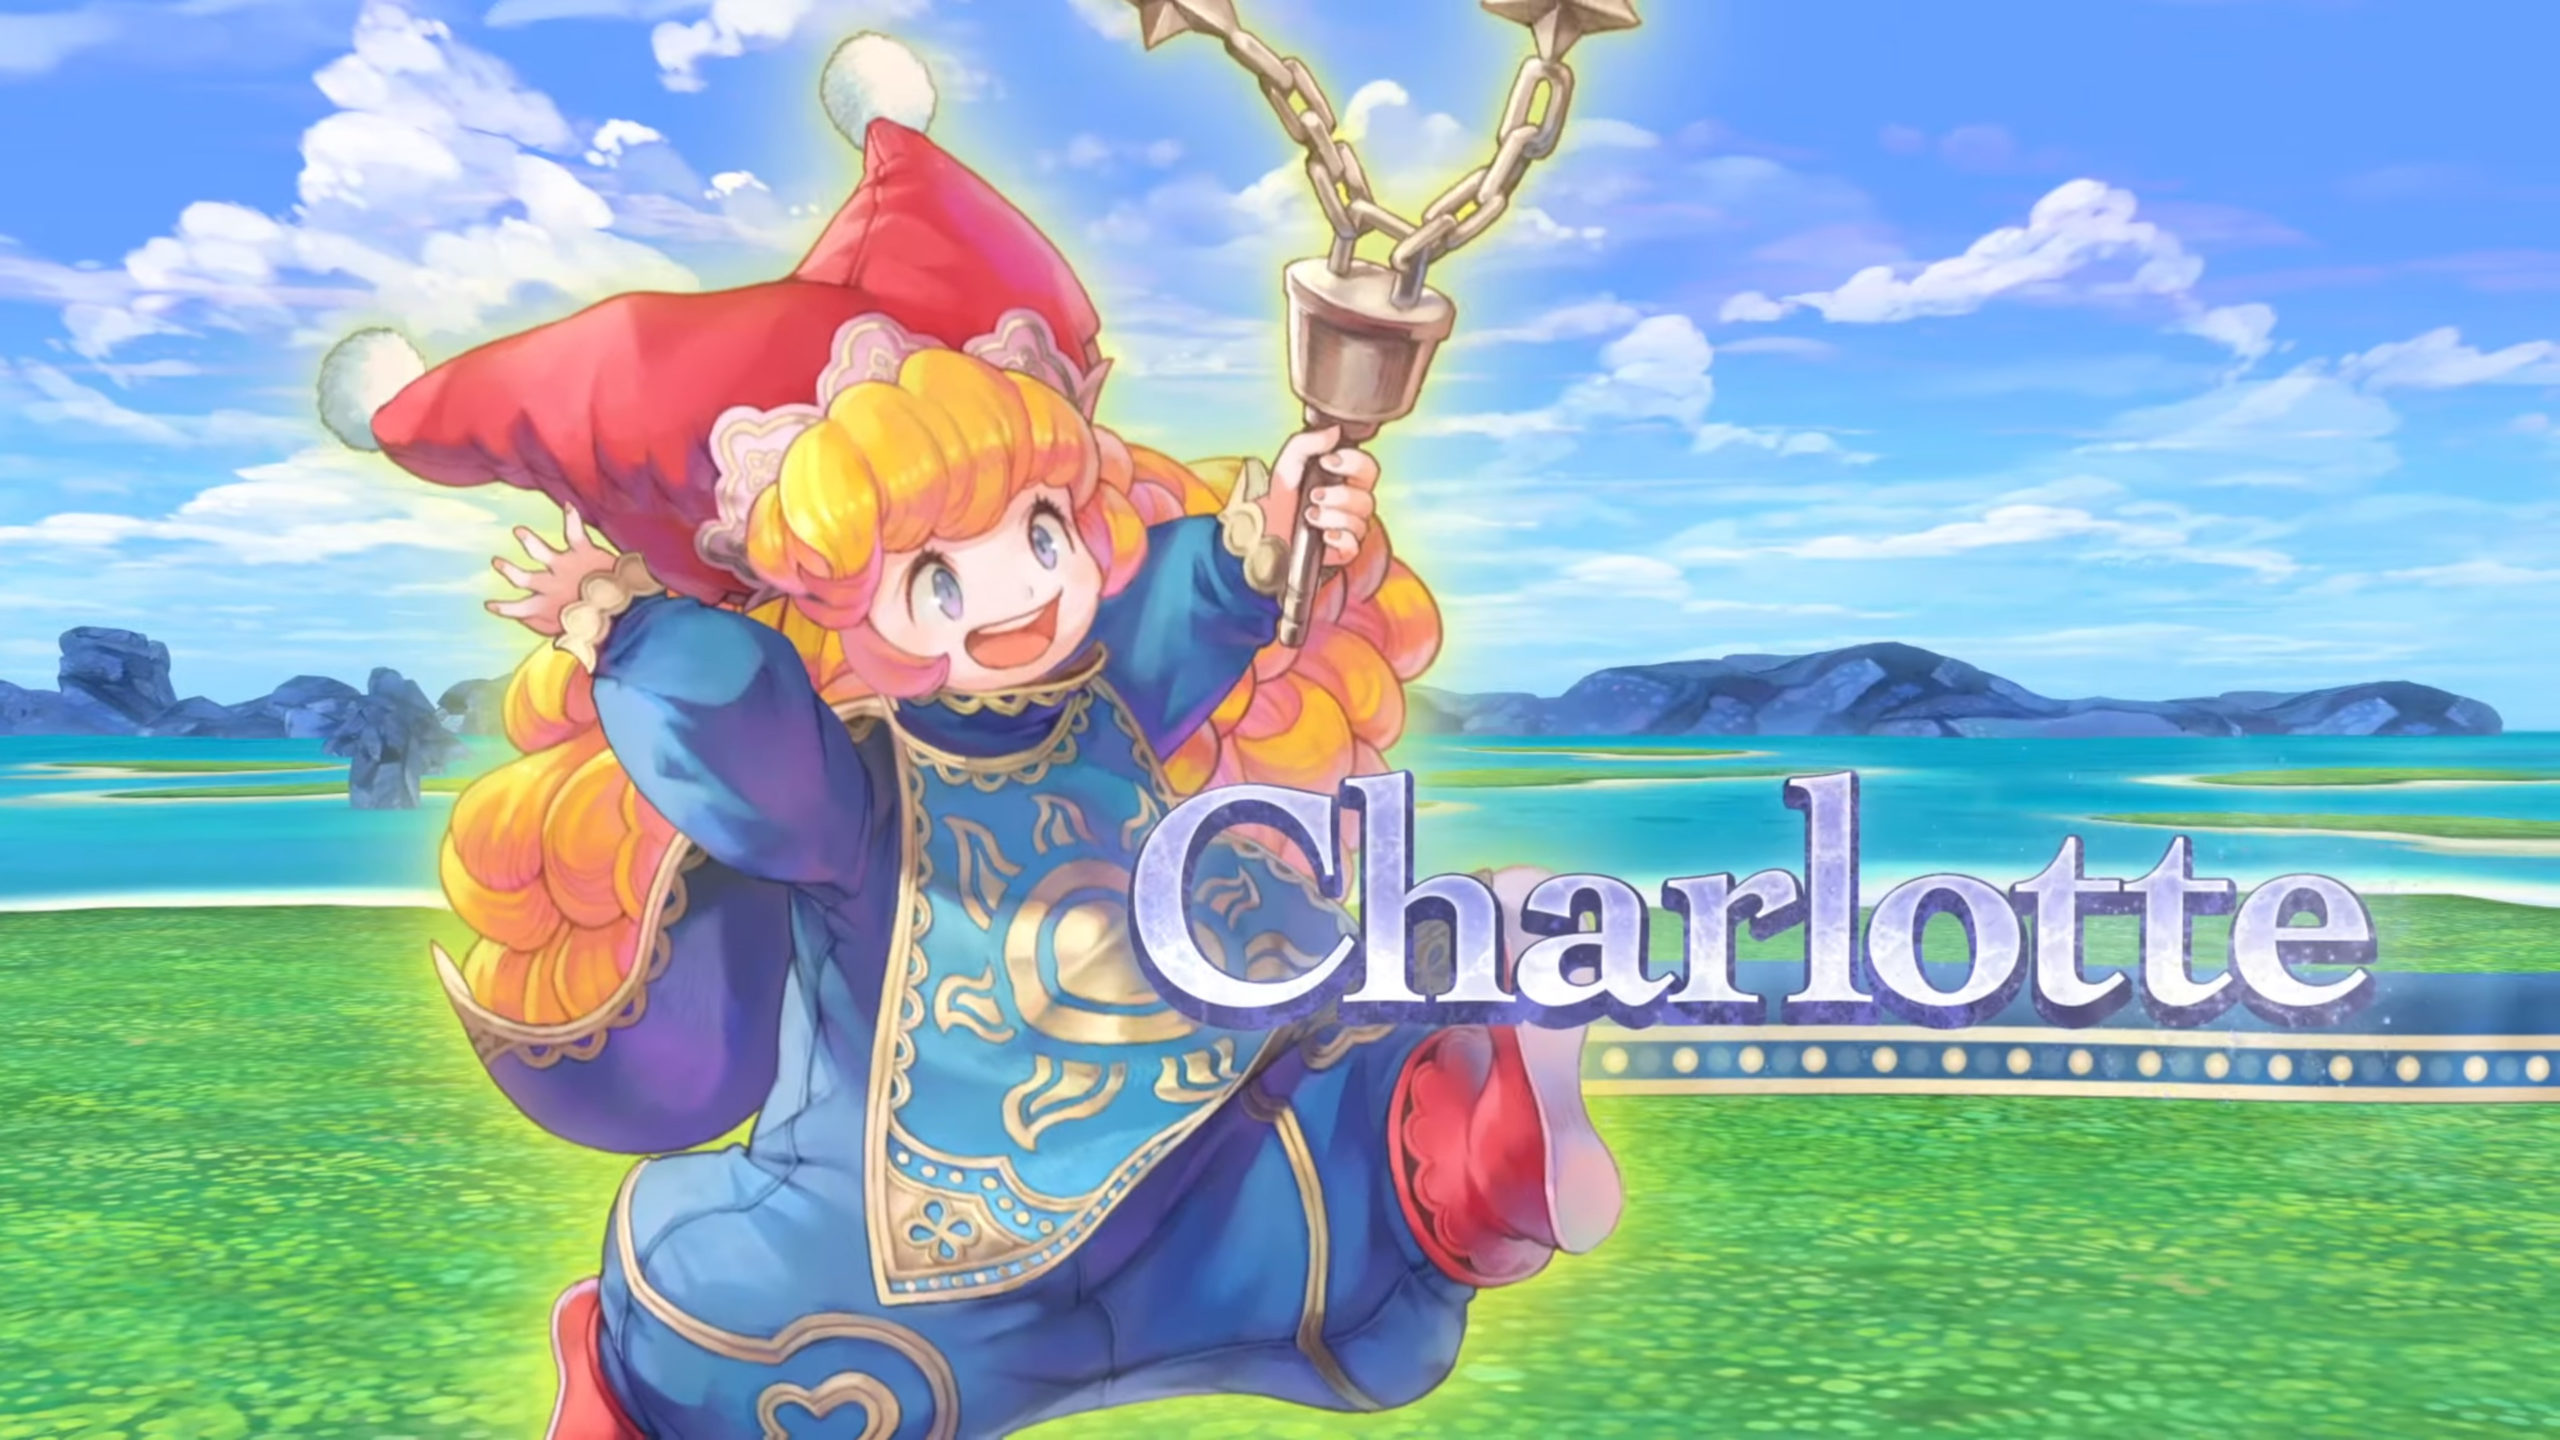 Trials of Mana - Charlotte